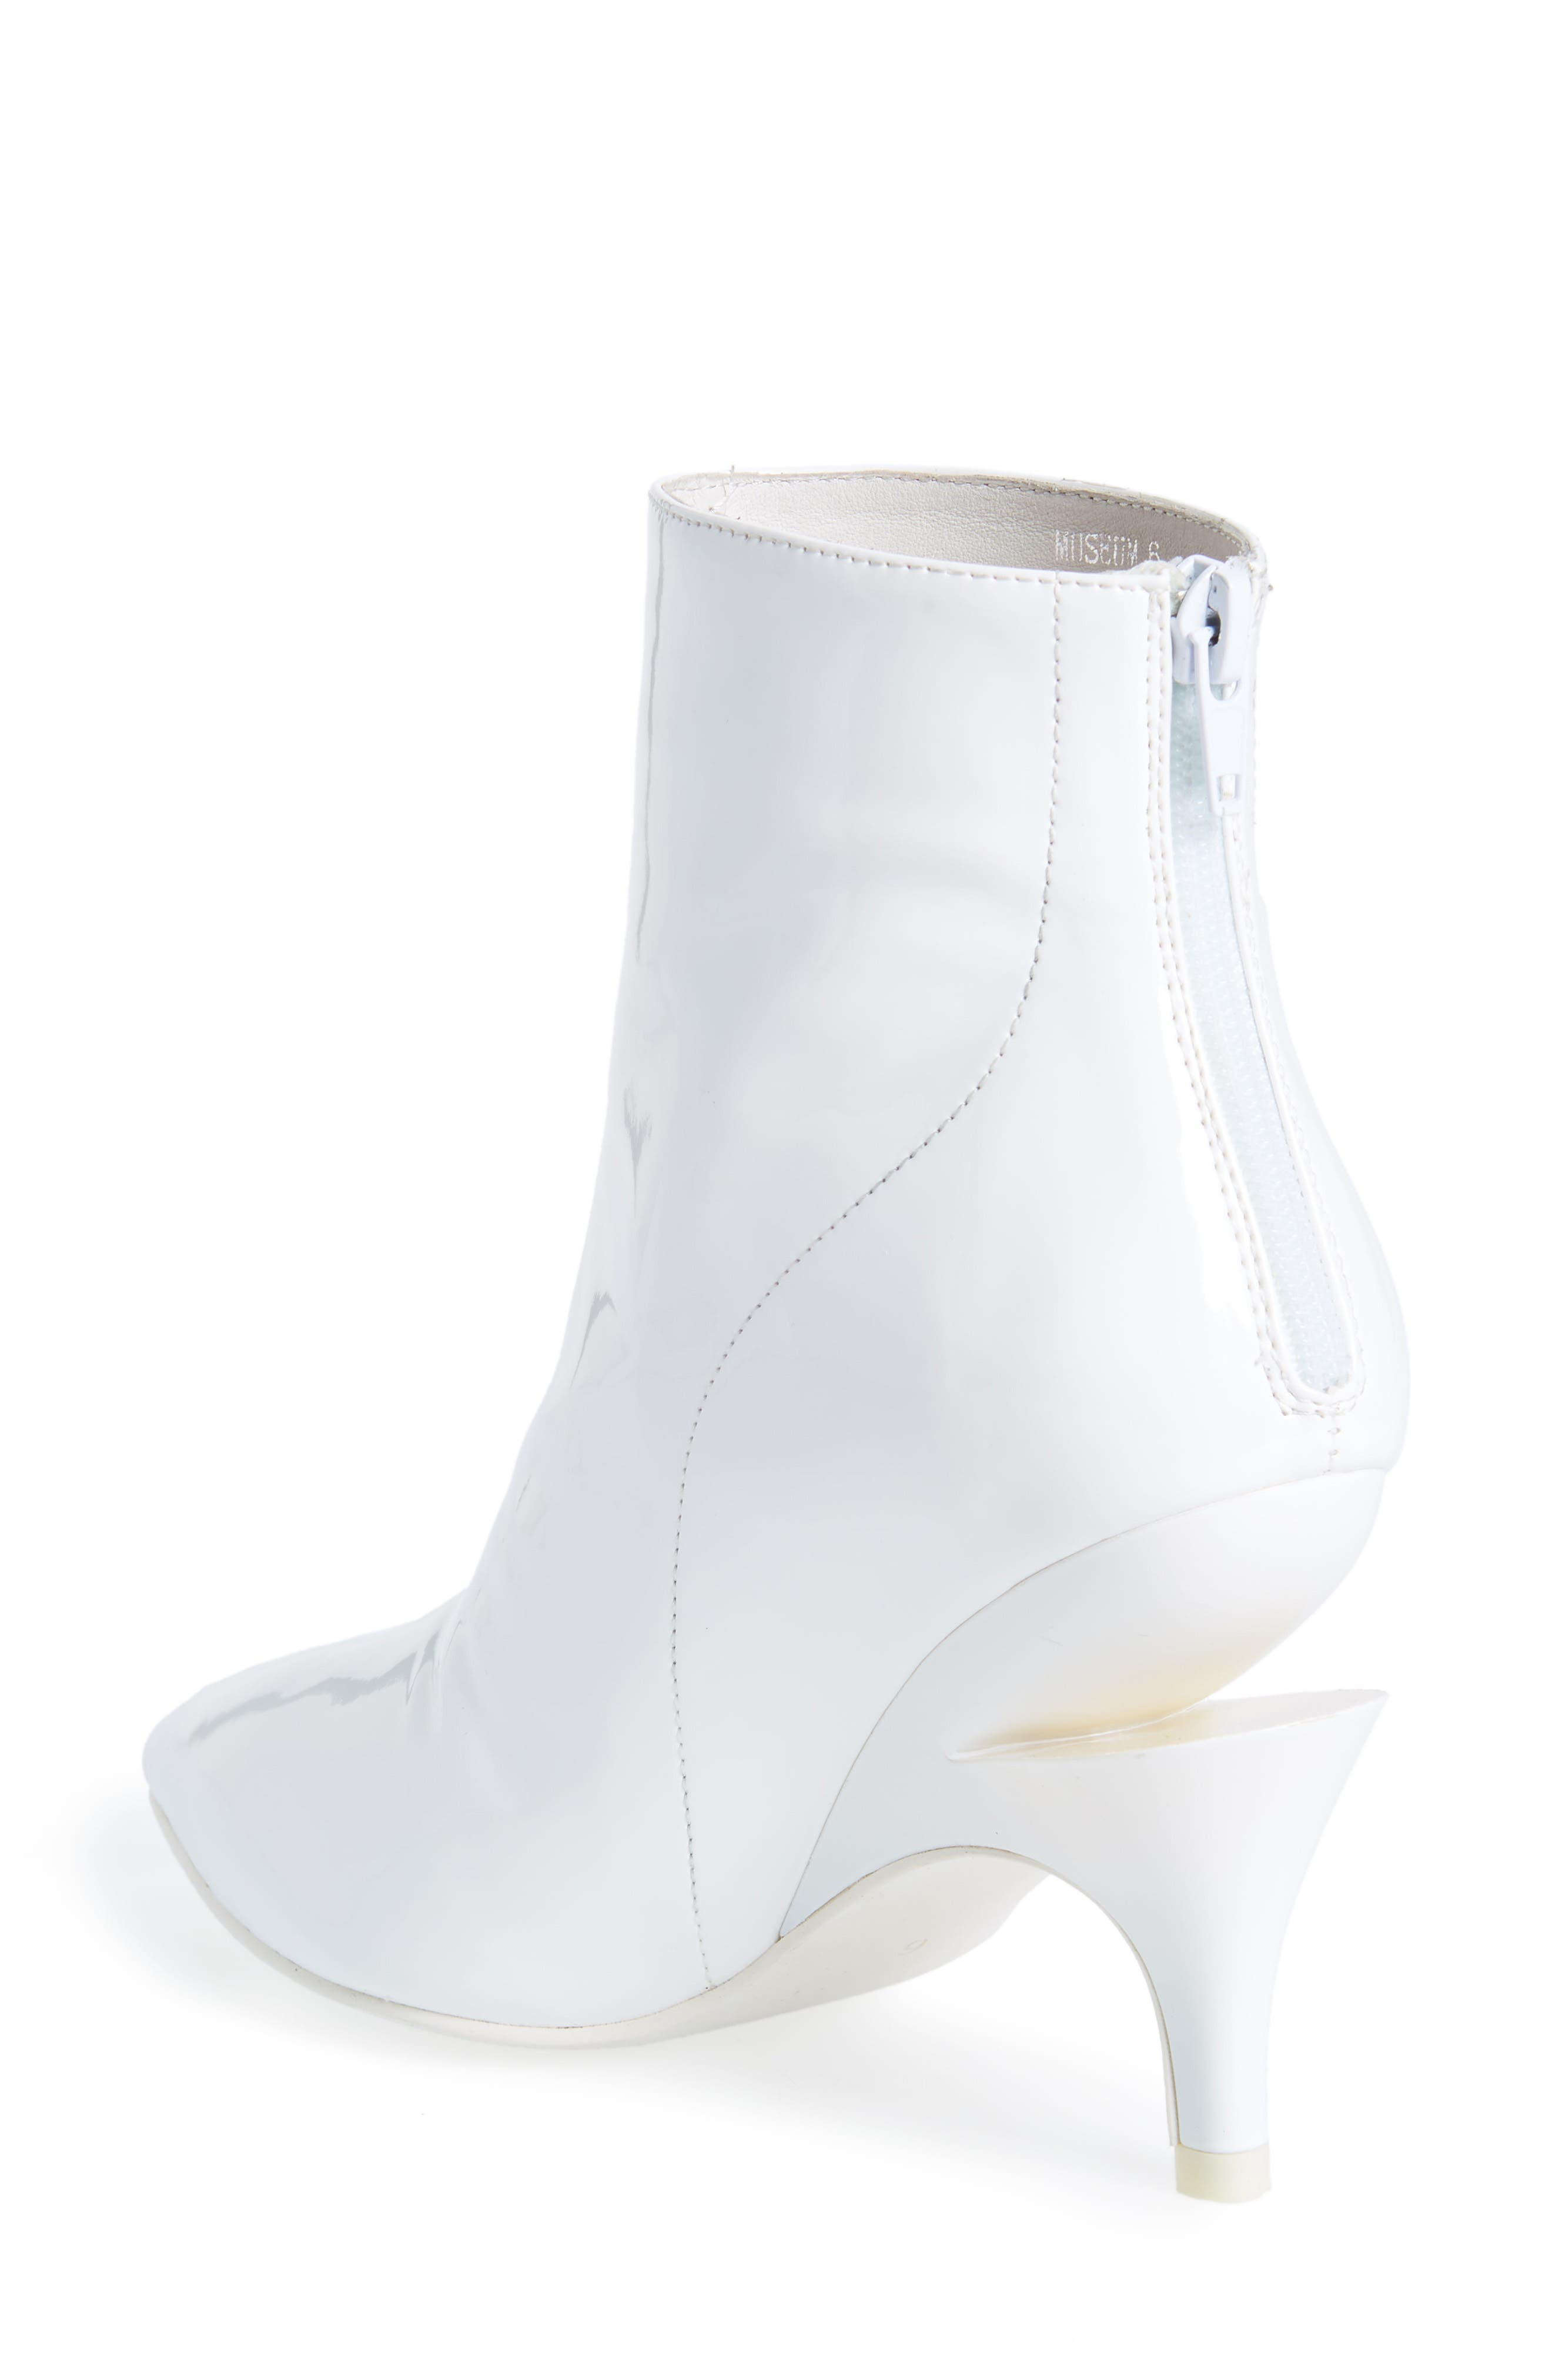 JEFFREY CAMPBELL, Museum Bootie, Alternate thumbnail 2, color, WHITE PATENT LEATHER